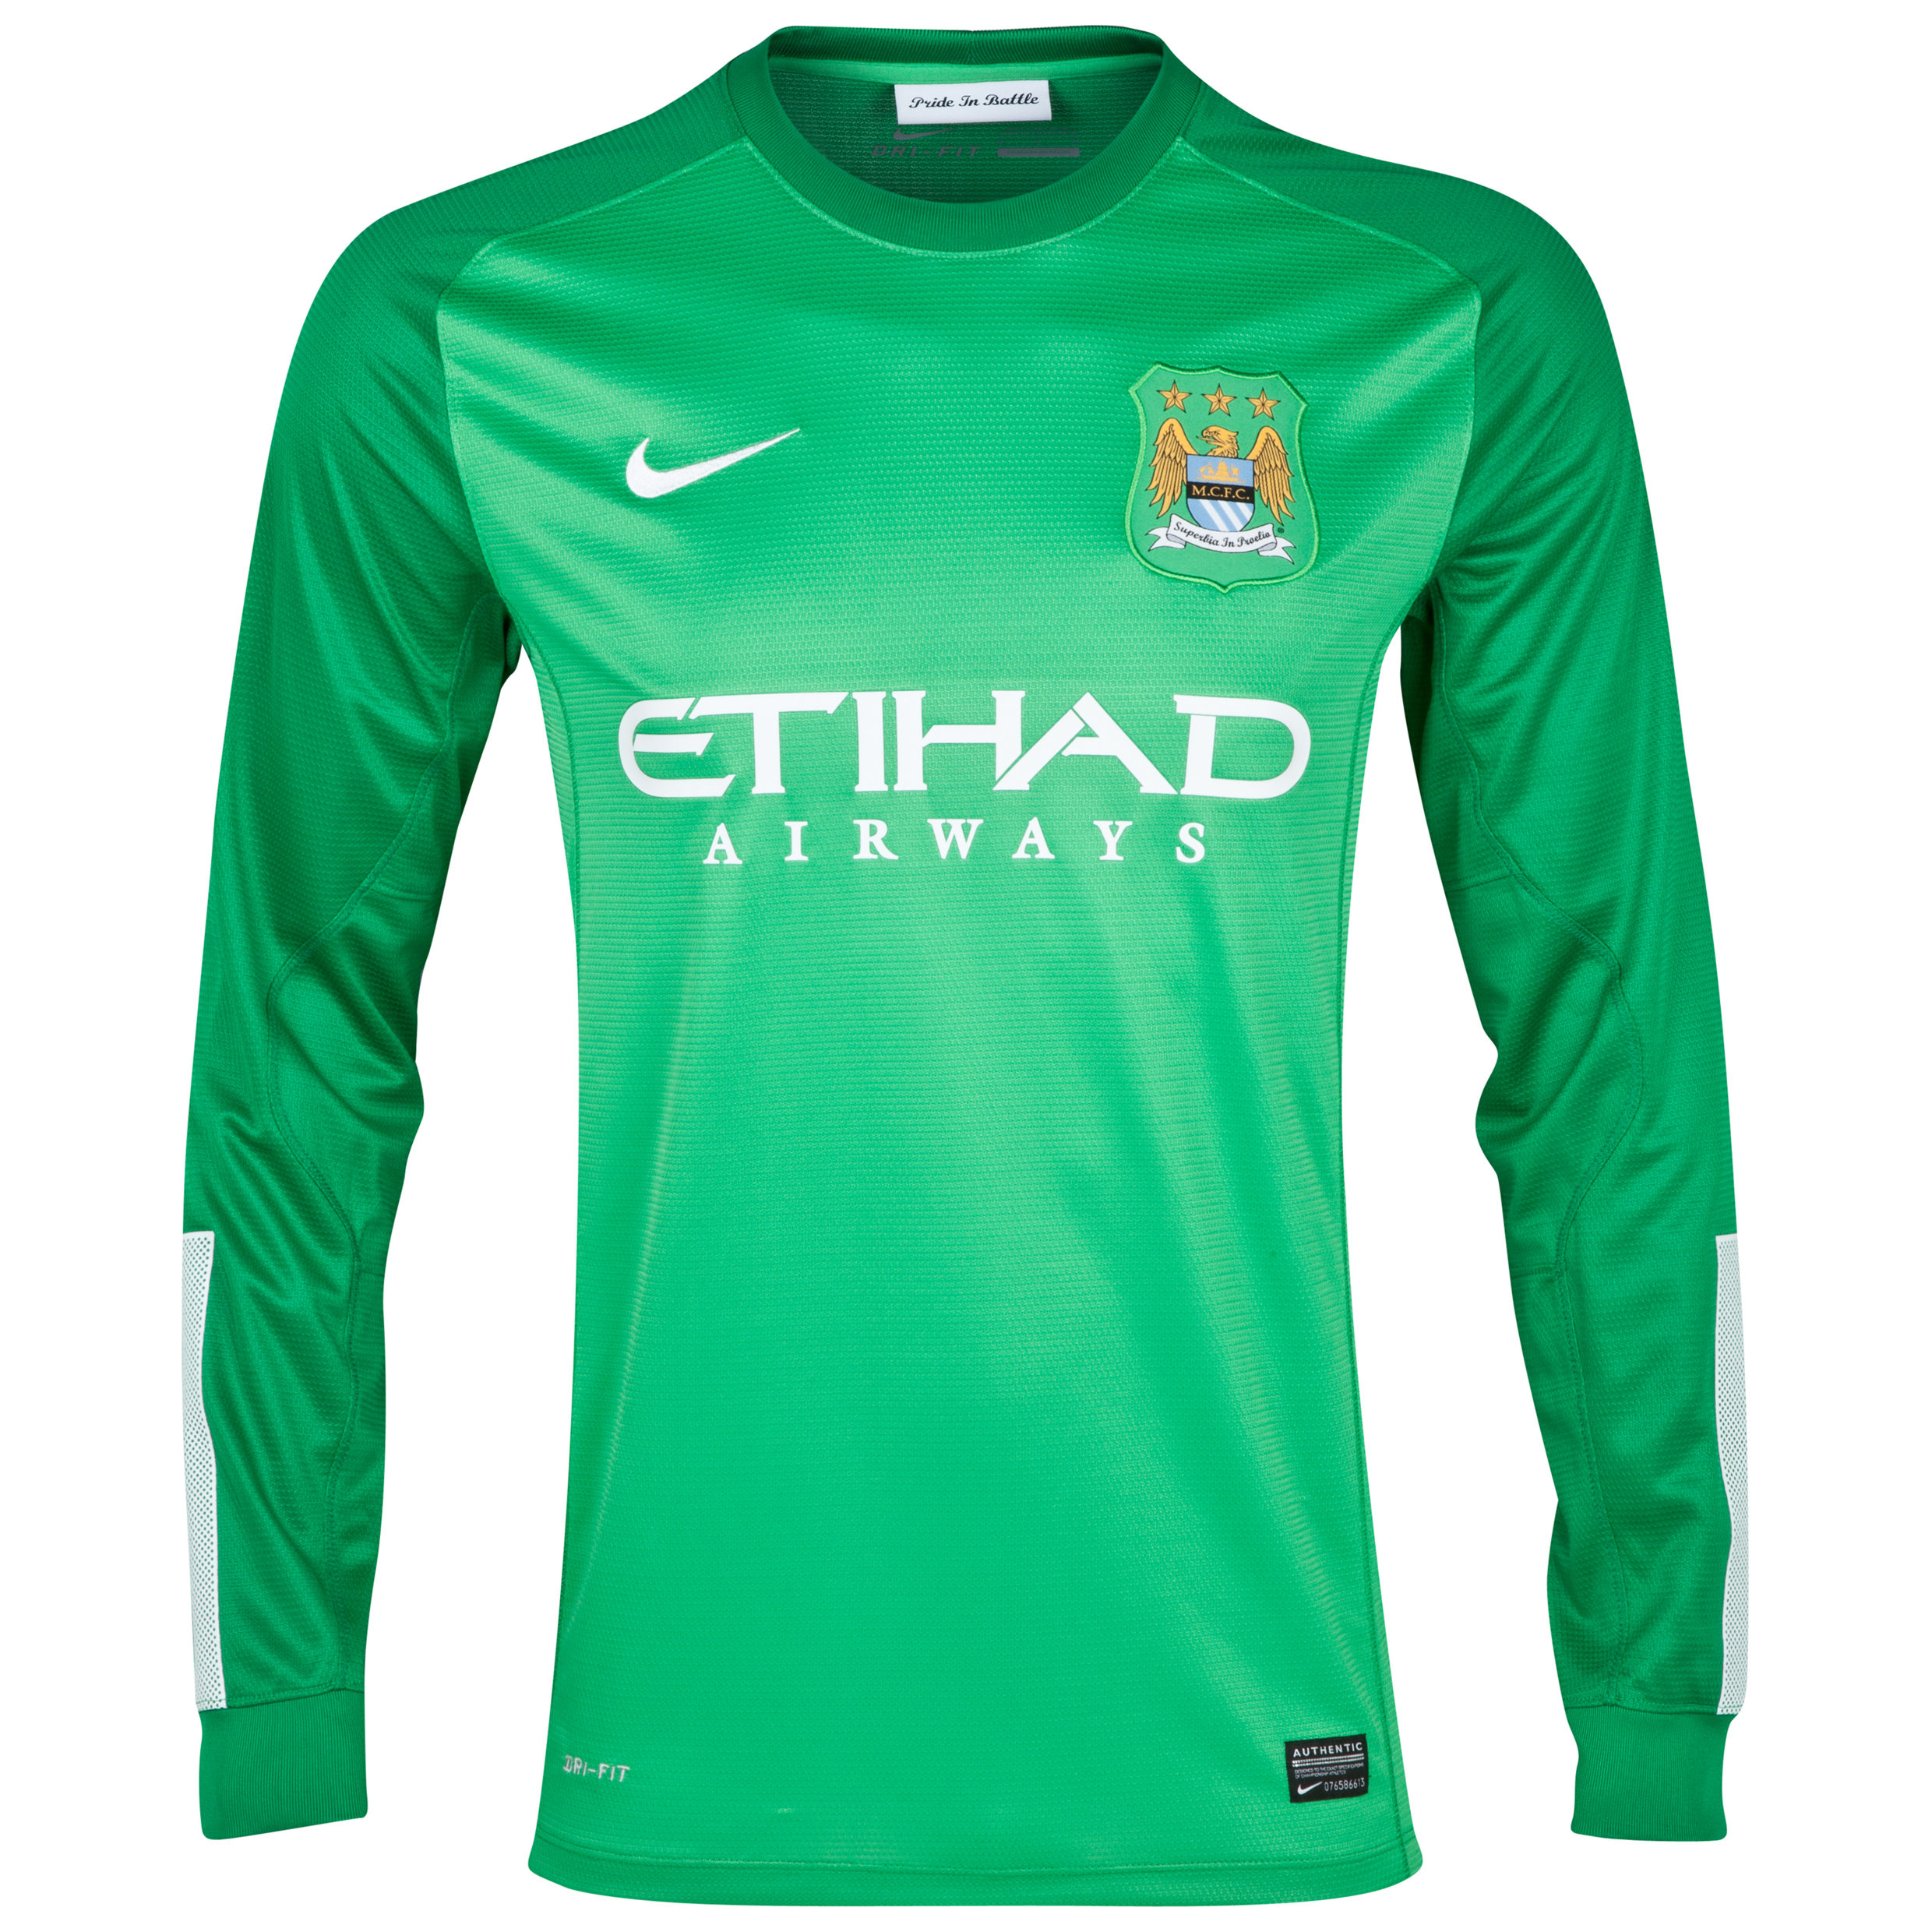 Manchester City Option 1 Goalkeeper Shirt 2013/14 - Junior - Green